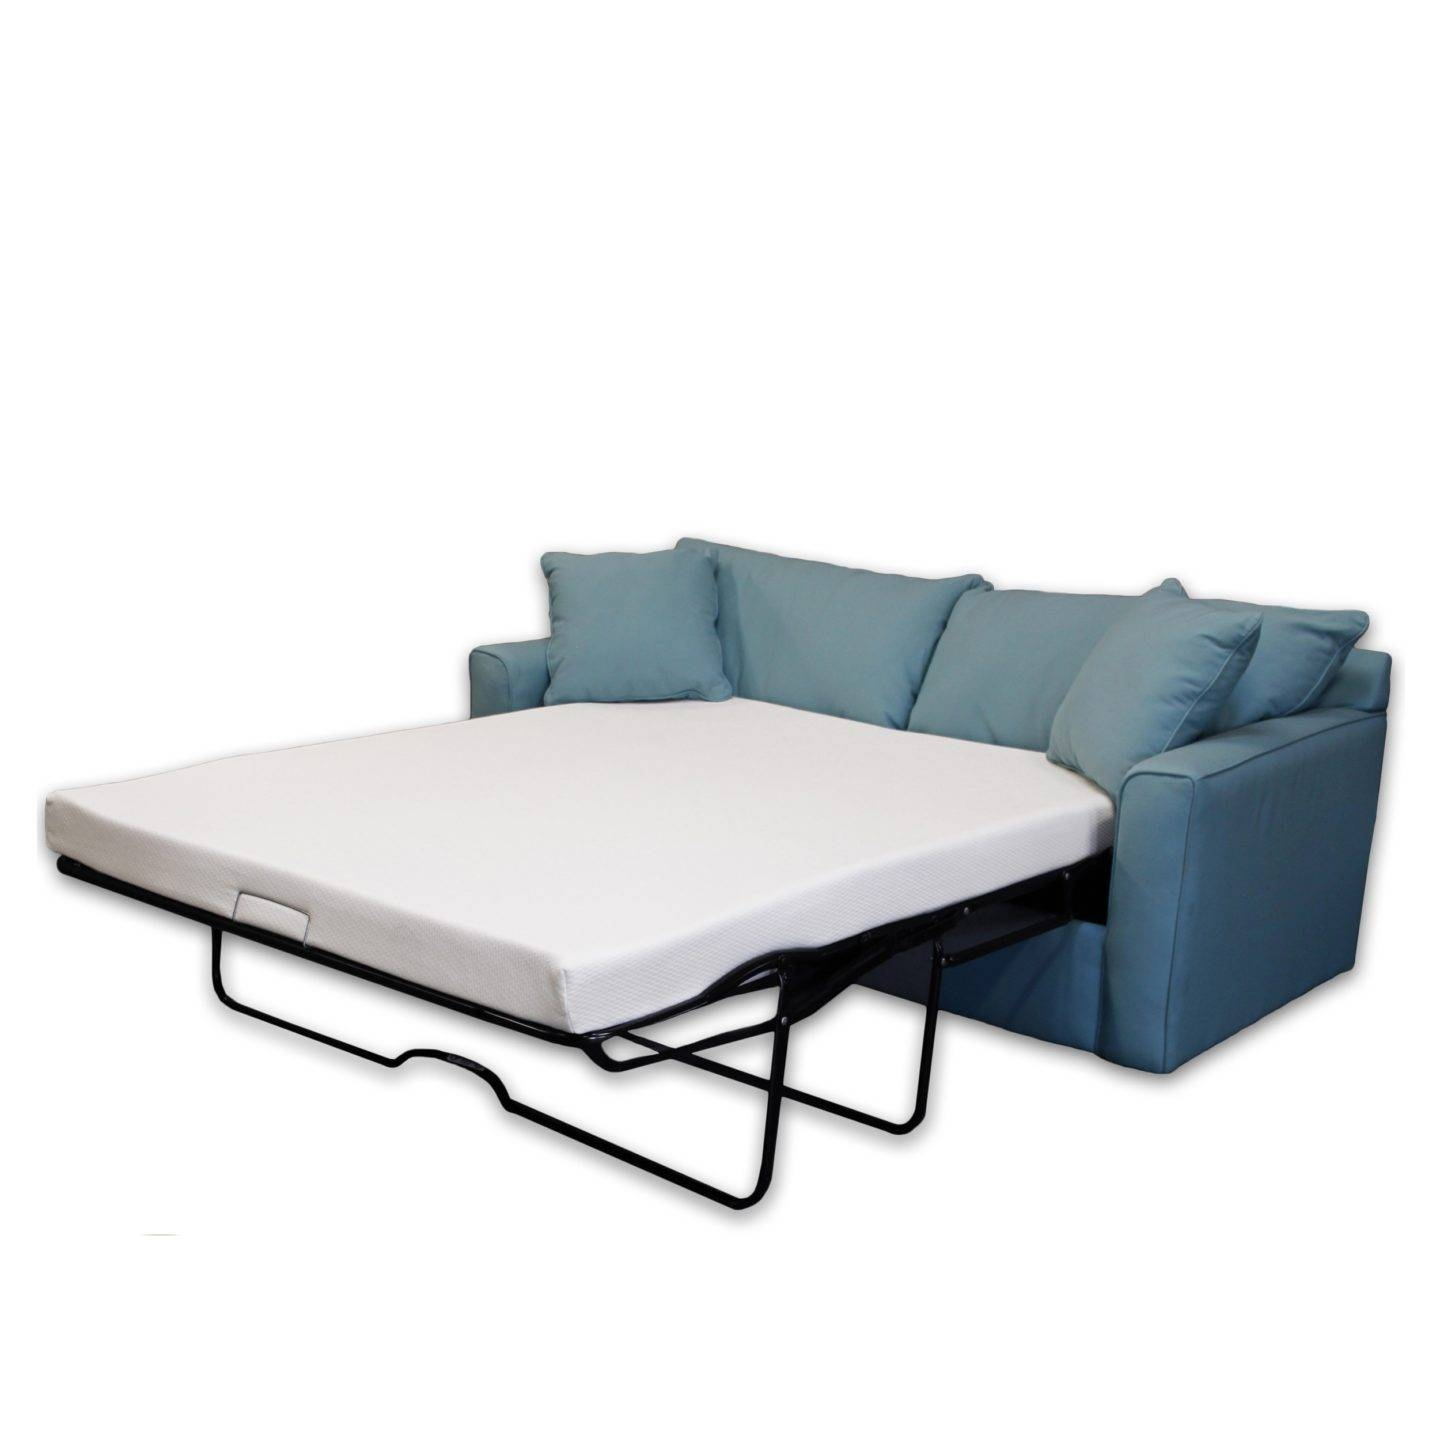 How To Make A Pull Out Sofa Bed More Comfortable – Overstock With Regard To Sofa Beds With Mattress Support (View 5 of 15)